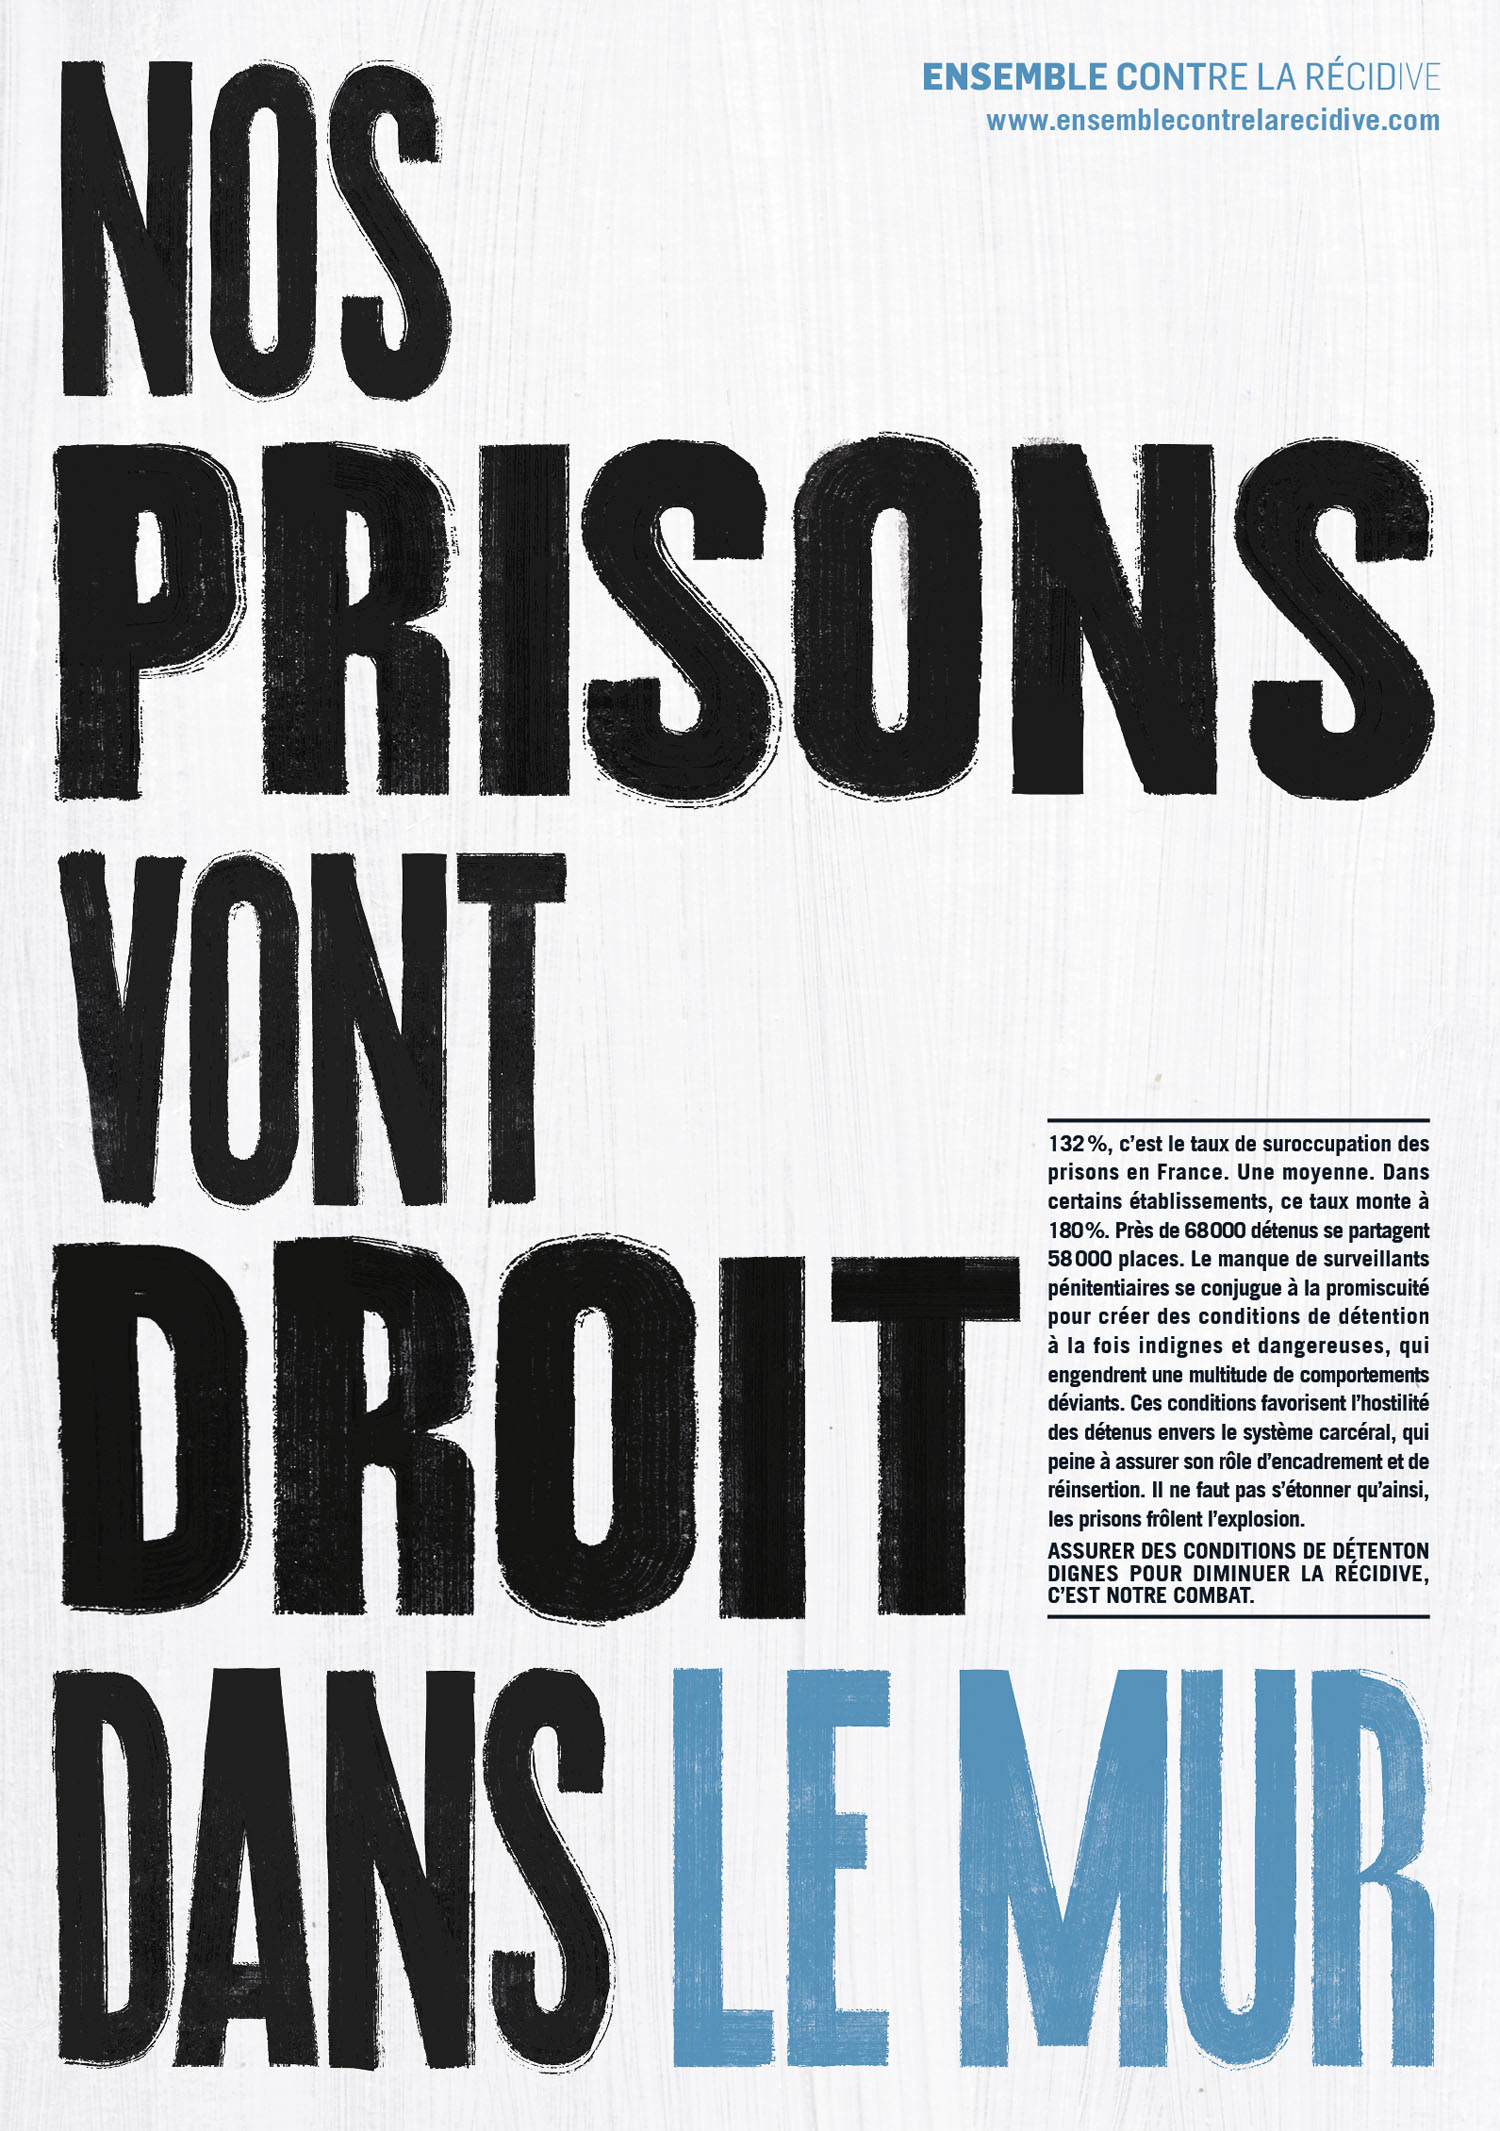 ensemble-contre-la-recidive-pierre-botton-prison-lutte-publicite-marketing-2016-agence-betc-1